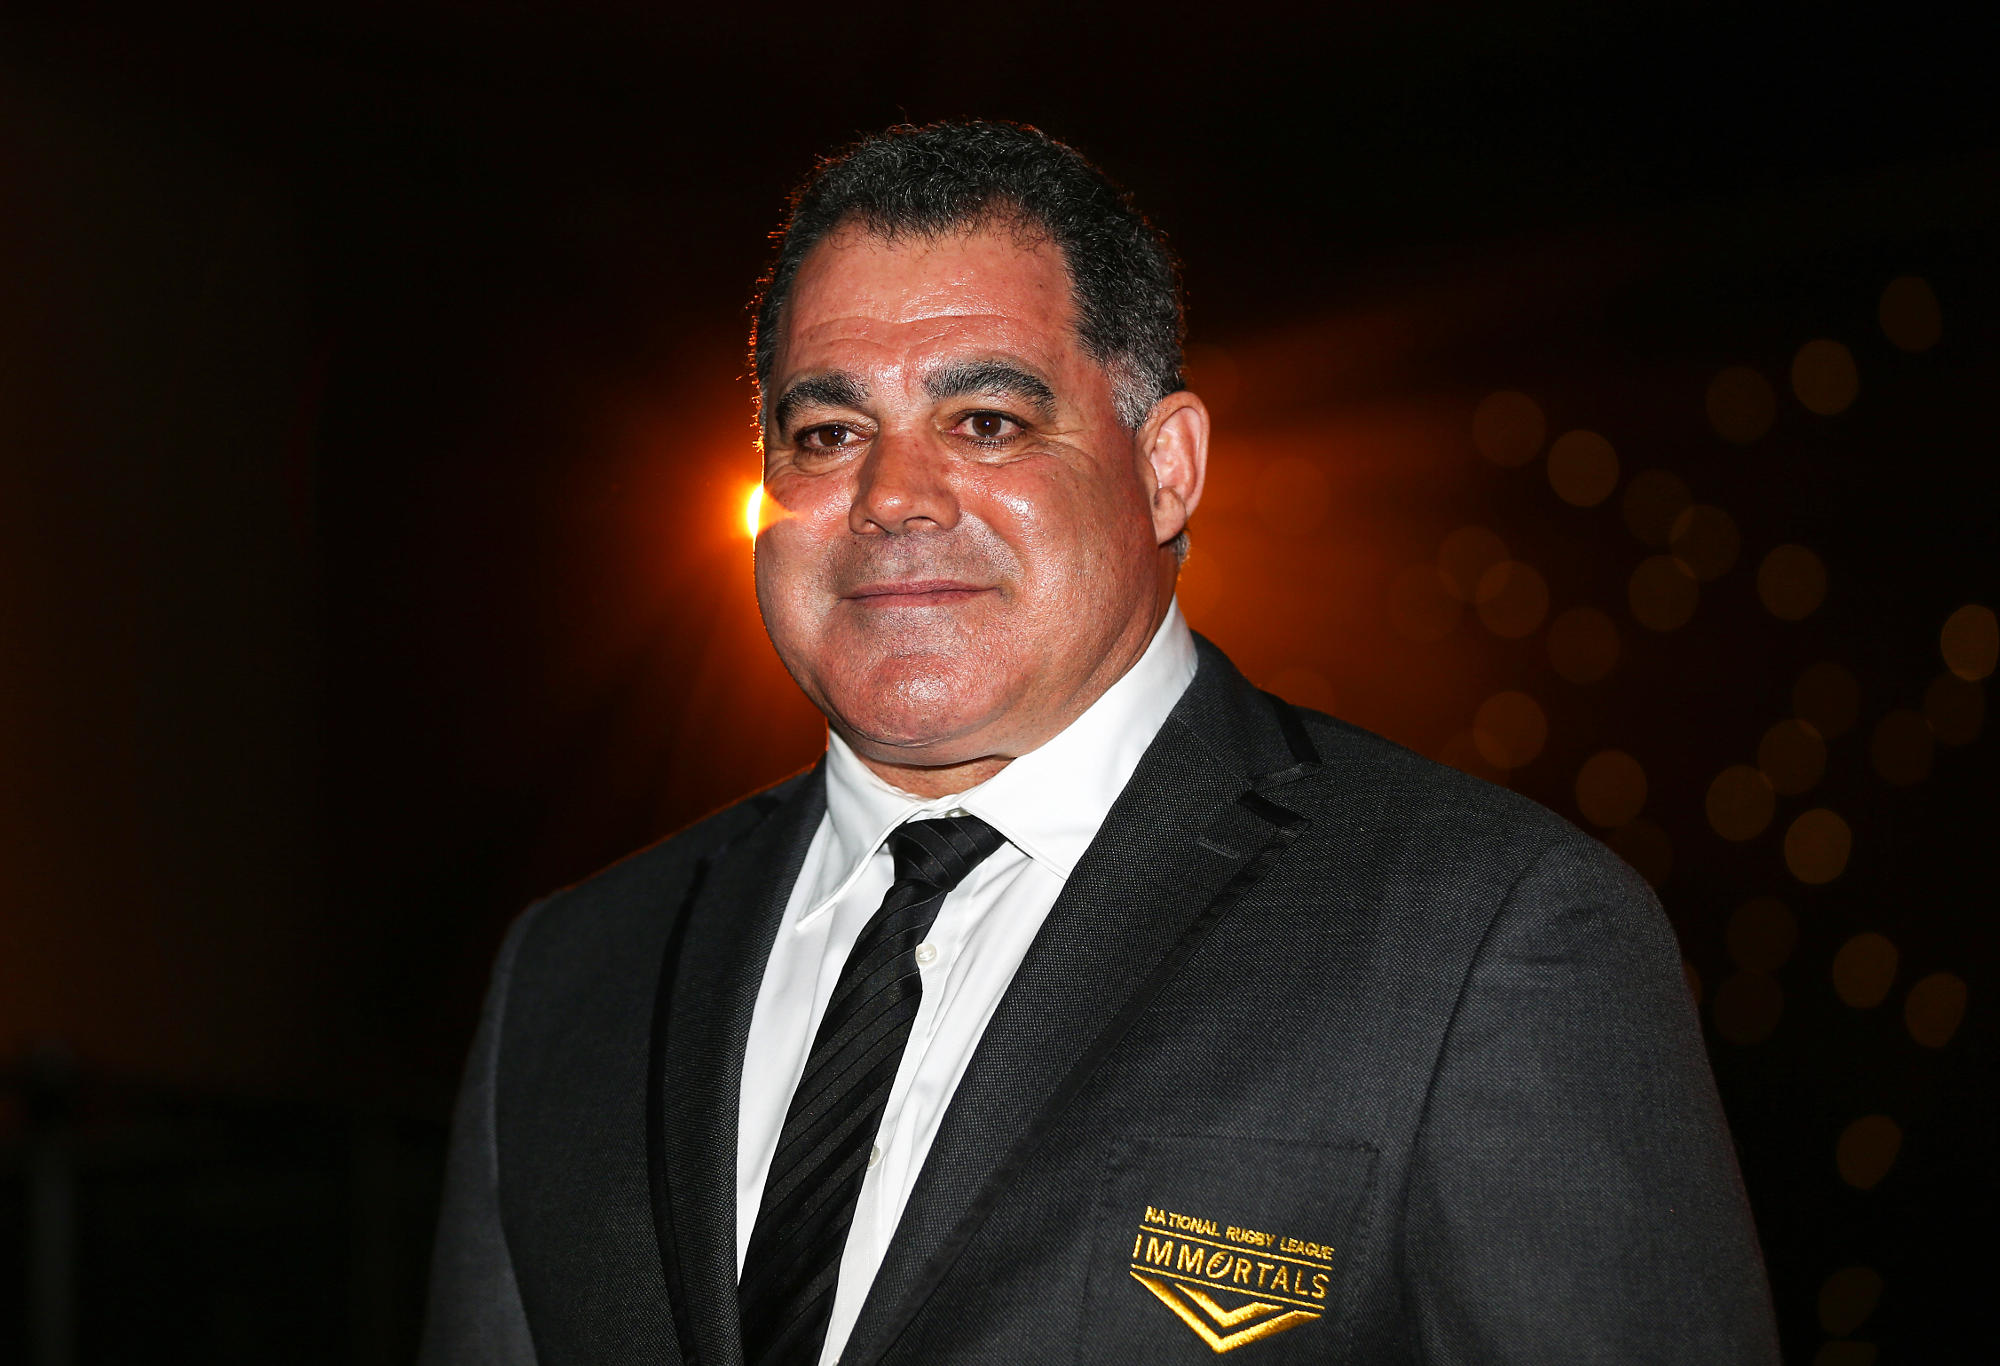 Mal Meninga poses after being inducted as the 13th immortal